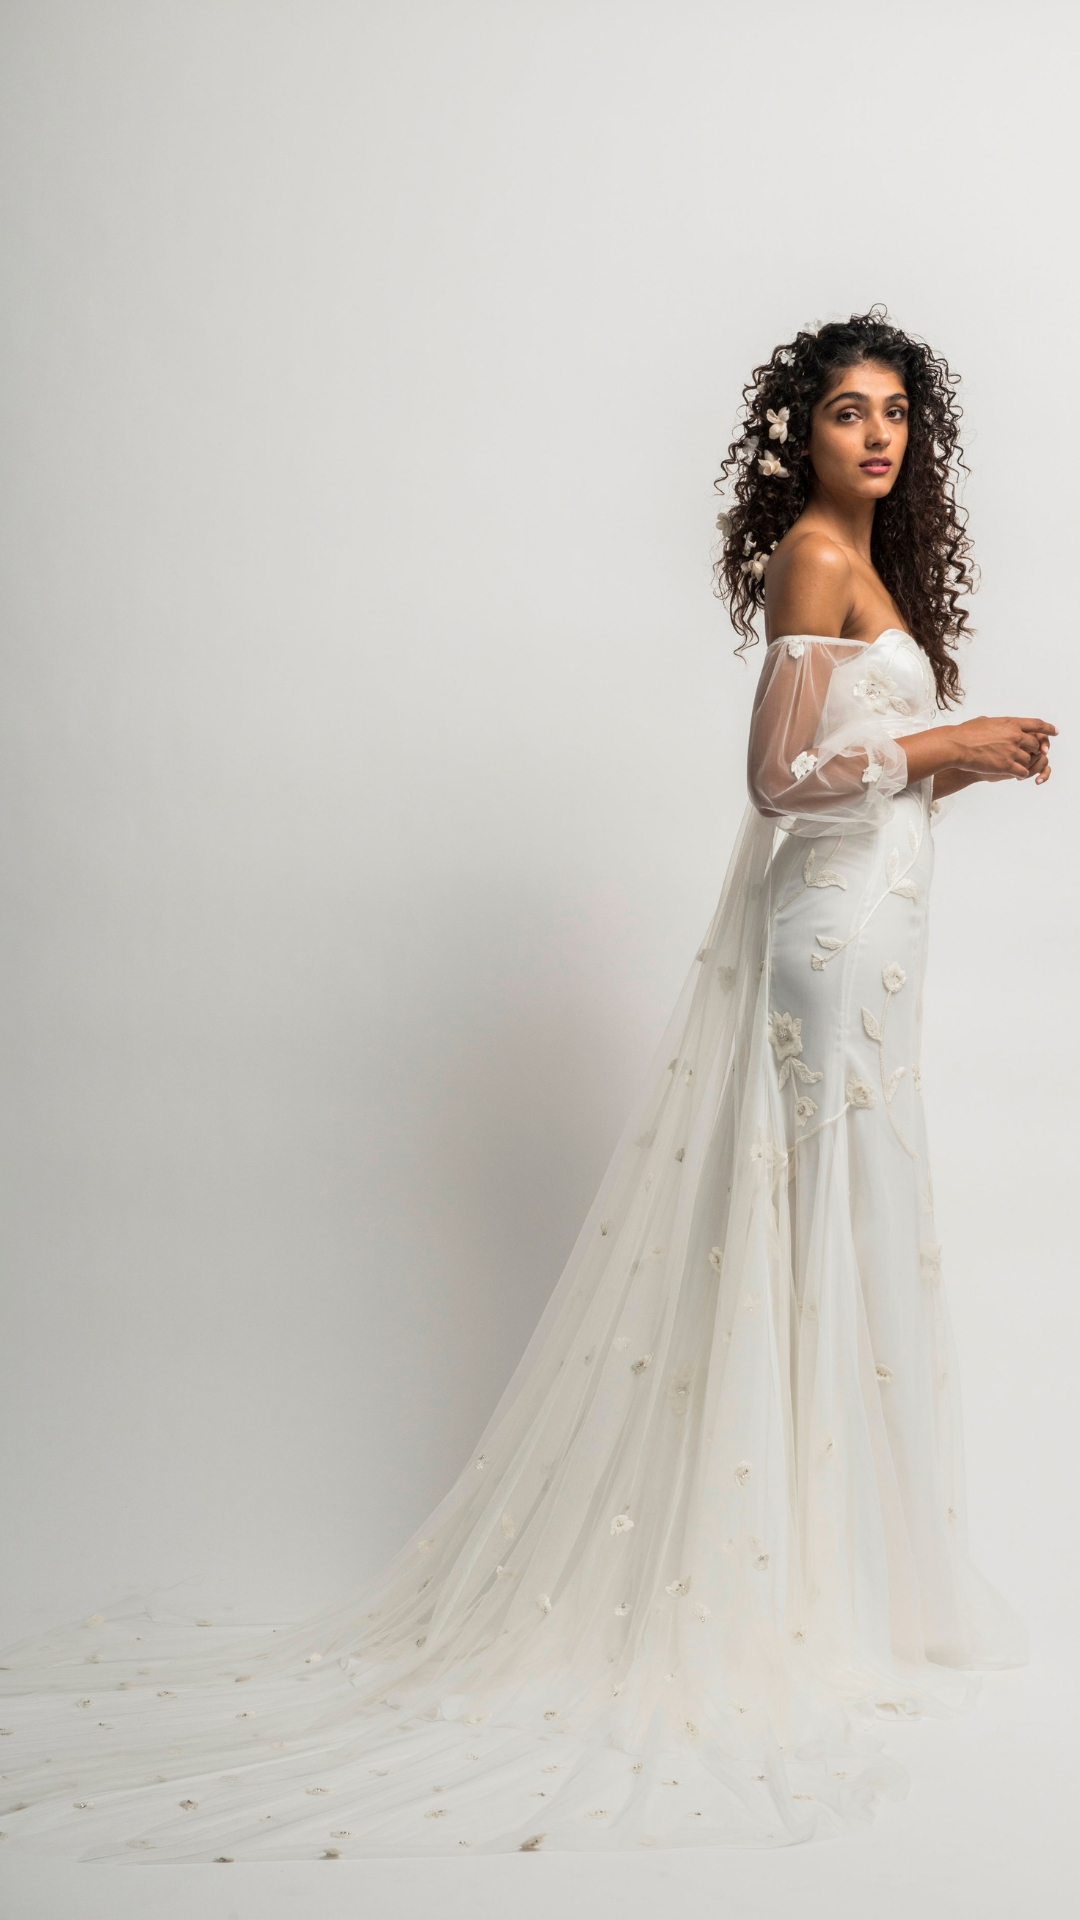 Exclusive A New Boho Bridal Boutique Just Launched In Dubai